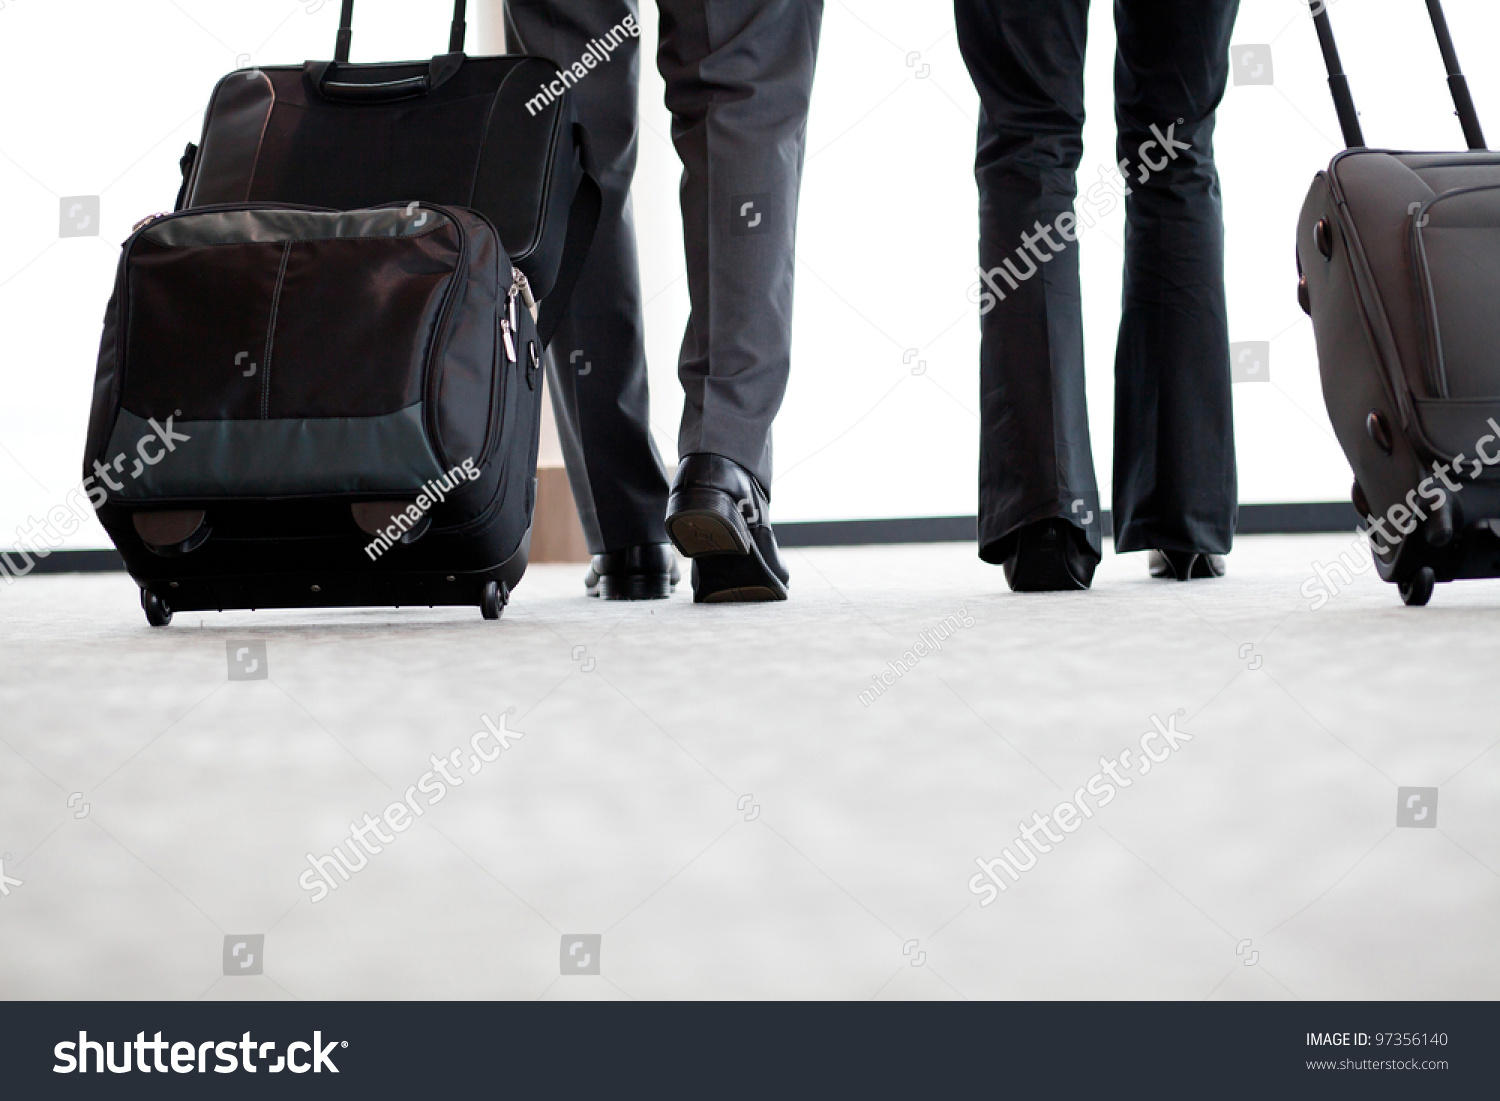 Business Travellers Walking Airport Luggage Stock Photo 97356140 ...